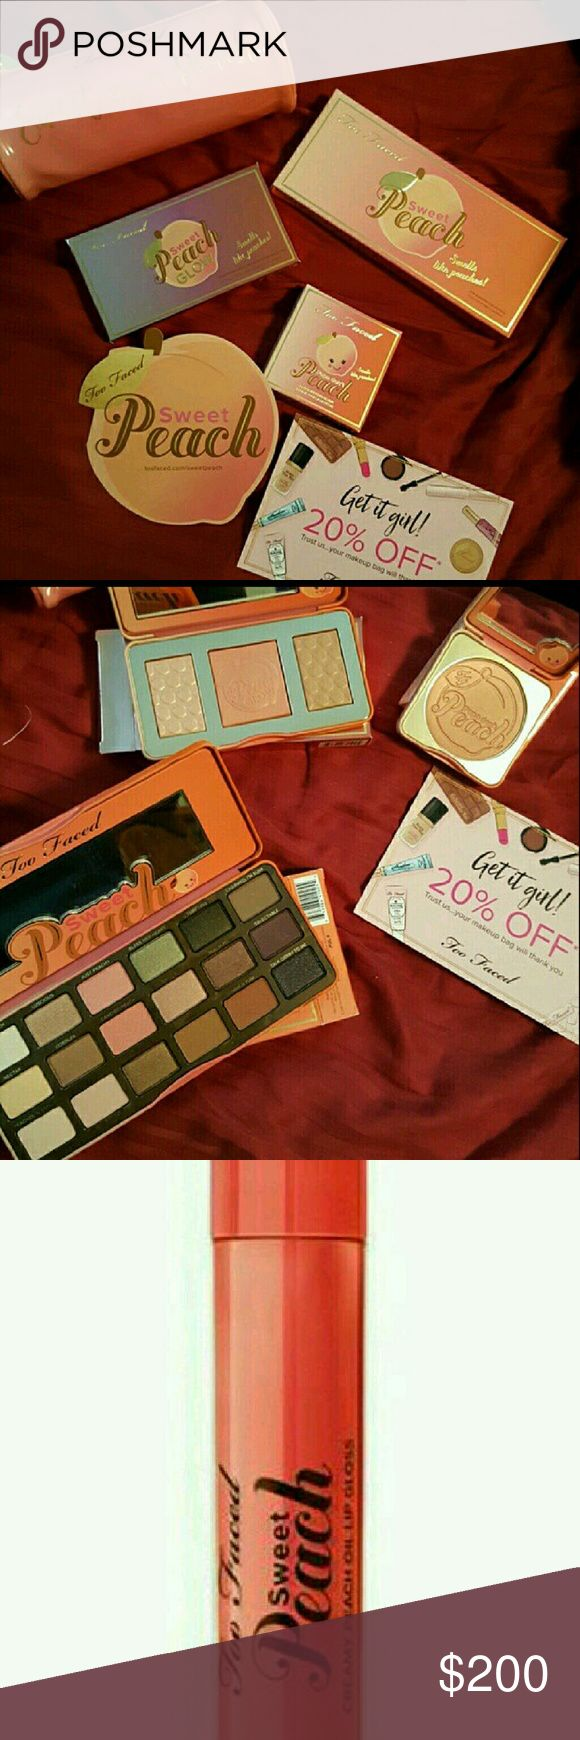 Too Faced Sweet Peach Collection New in boxes authentic from too faced Sweet Peach Collection includes the Sweet Peach pallet, Papa Don't Peach blush, Sweet Peach Glow illuminator, limited edition sweet as a peach makeup bag, peach oil lipgloss and a 20% off your next Too Faced purchase coupon. Too Faced Makeup